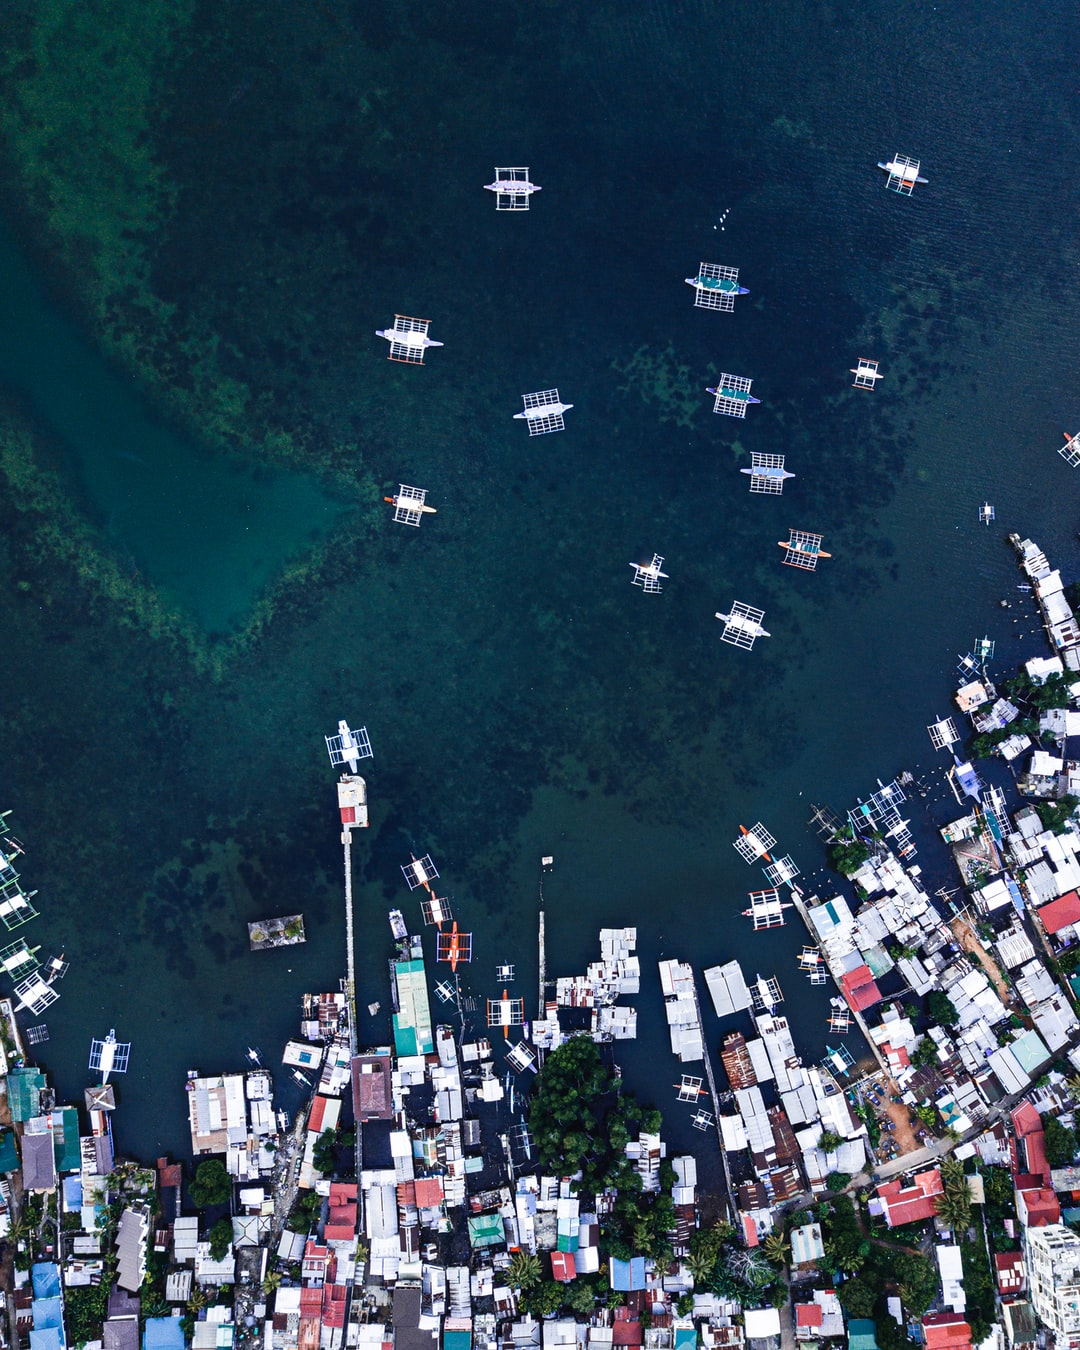 Cenital shot of the the boats in the port of Coron Town in Palawan, the Philippines